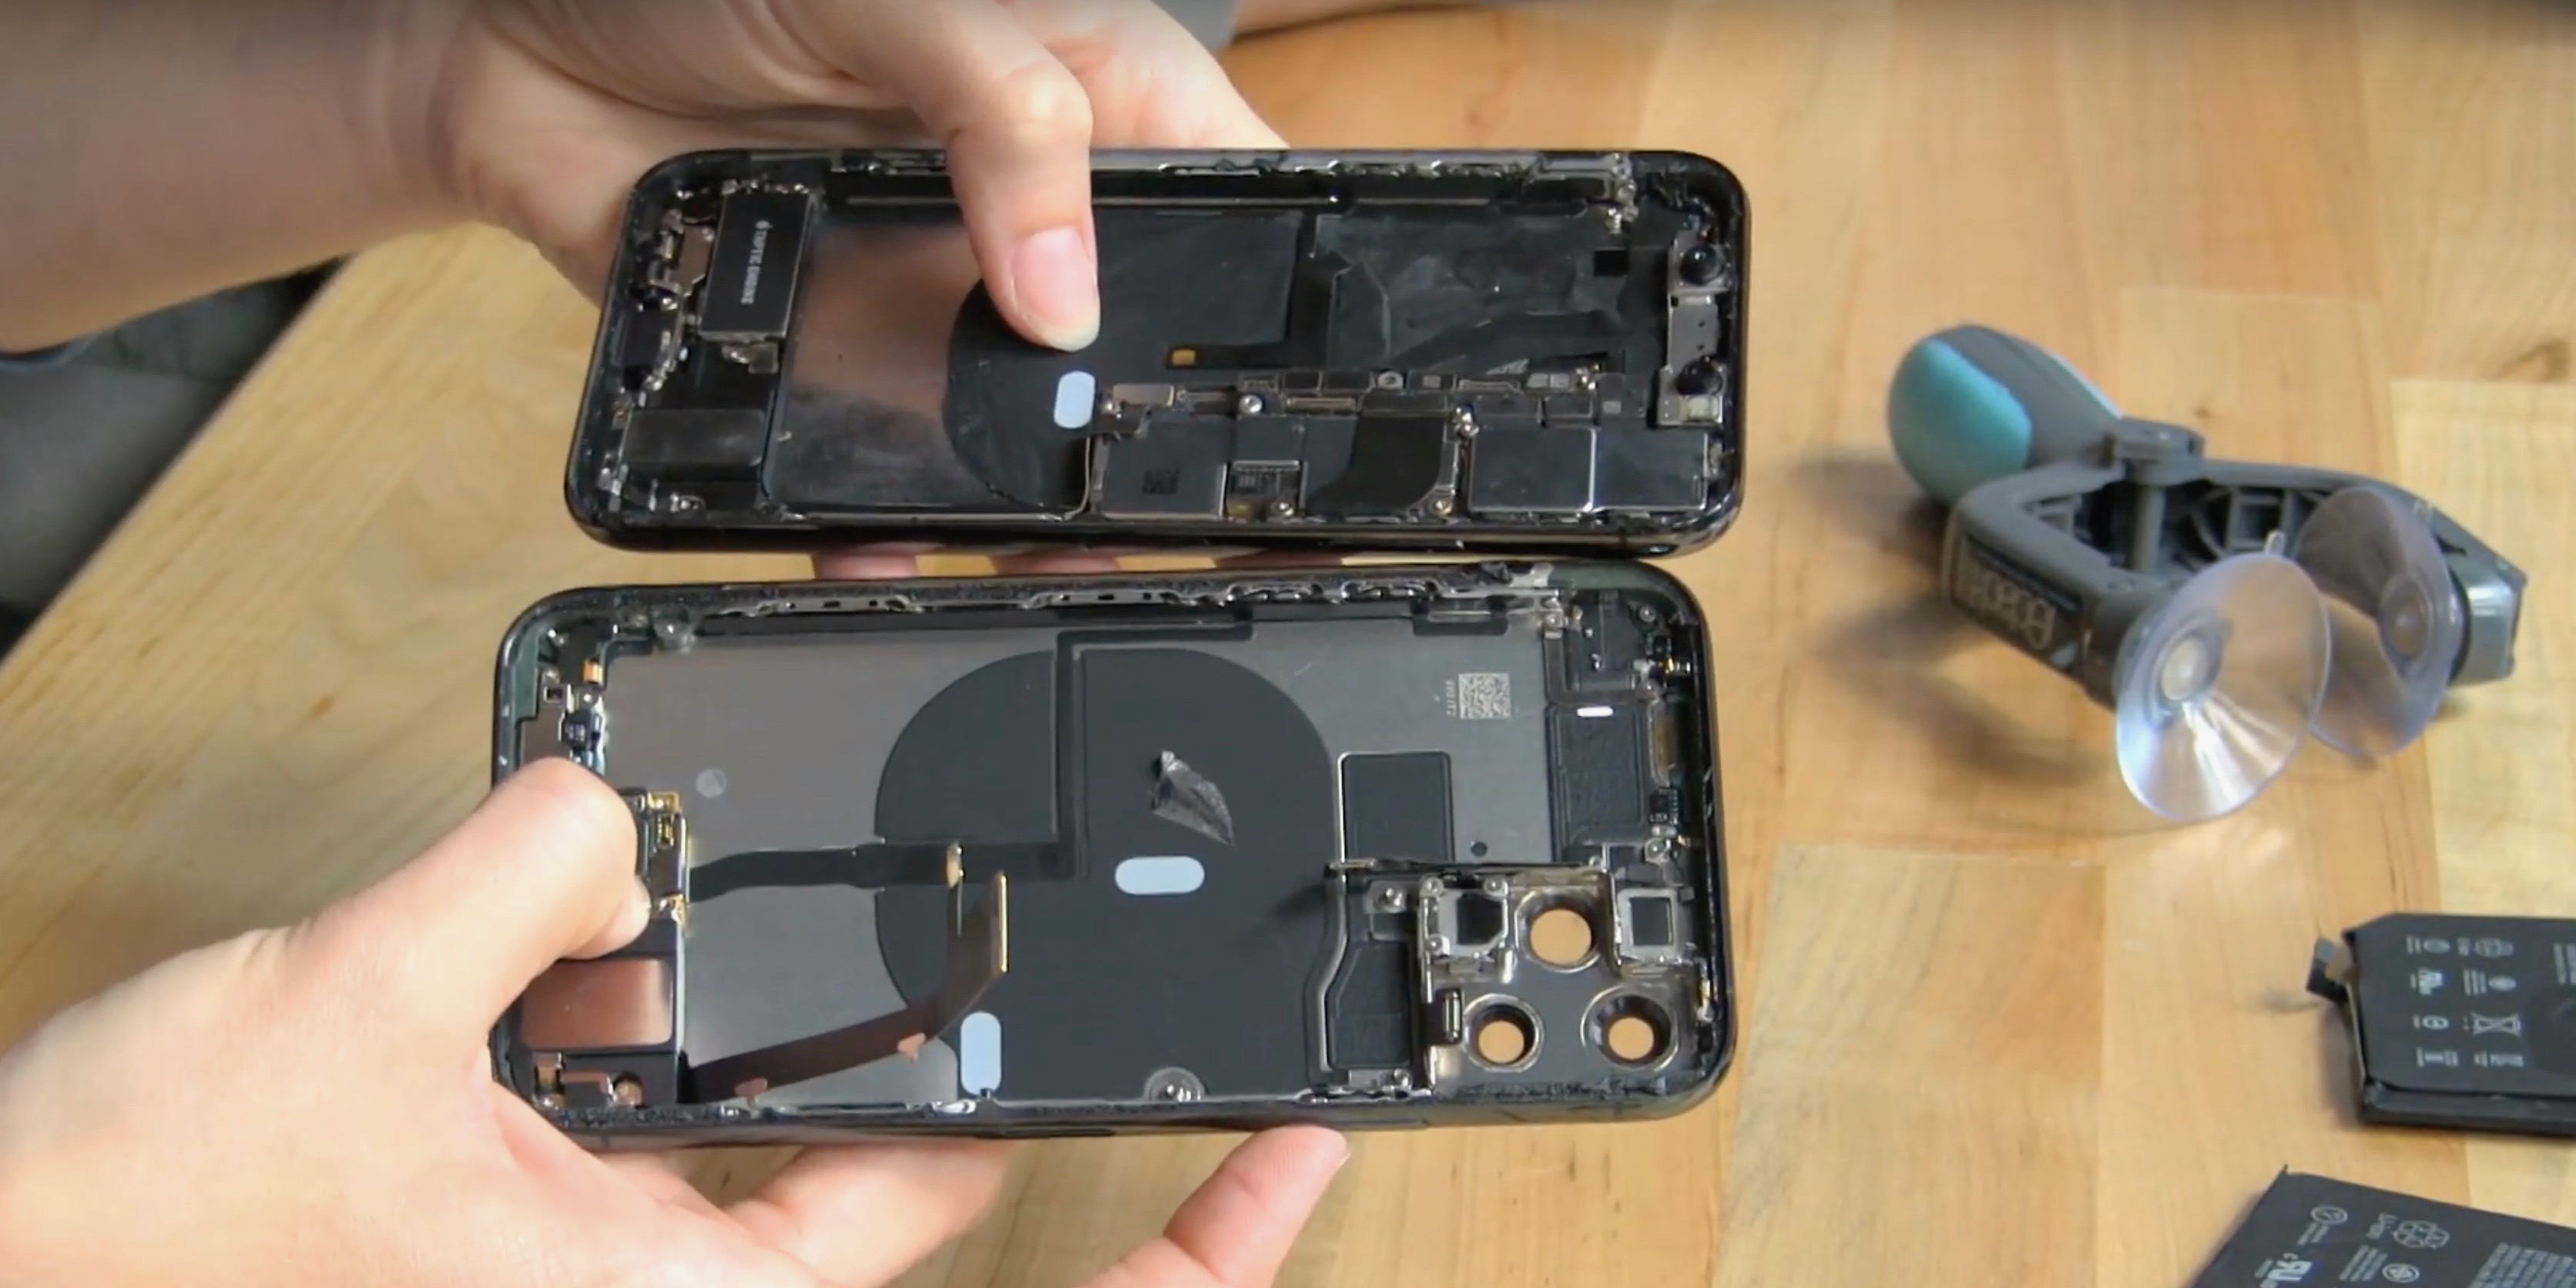 iPhone 11 Pro teardown reveals new board under battery, possibly for  bilateral wireless charging - 9to5Mac